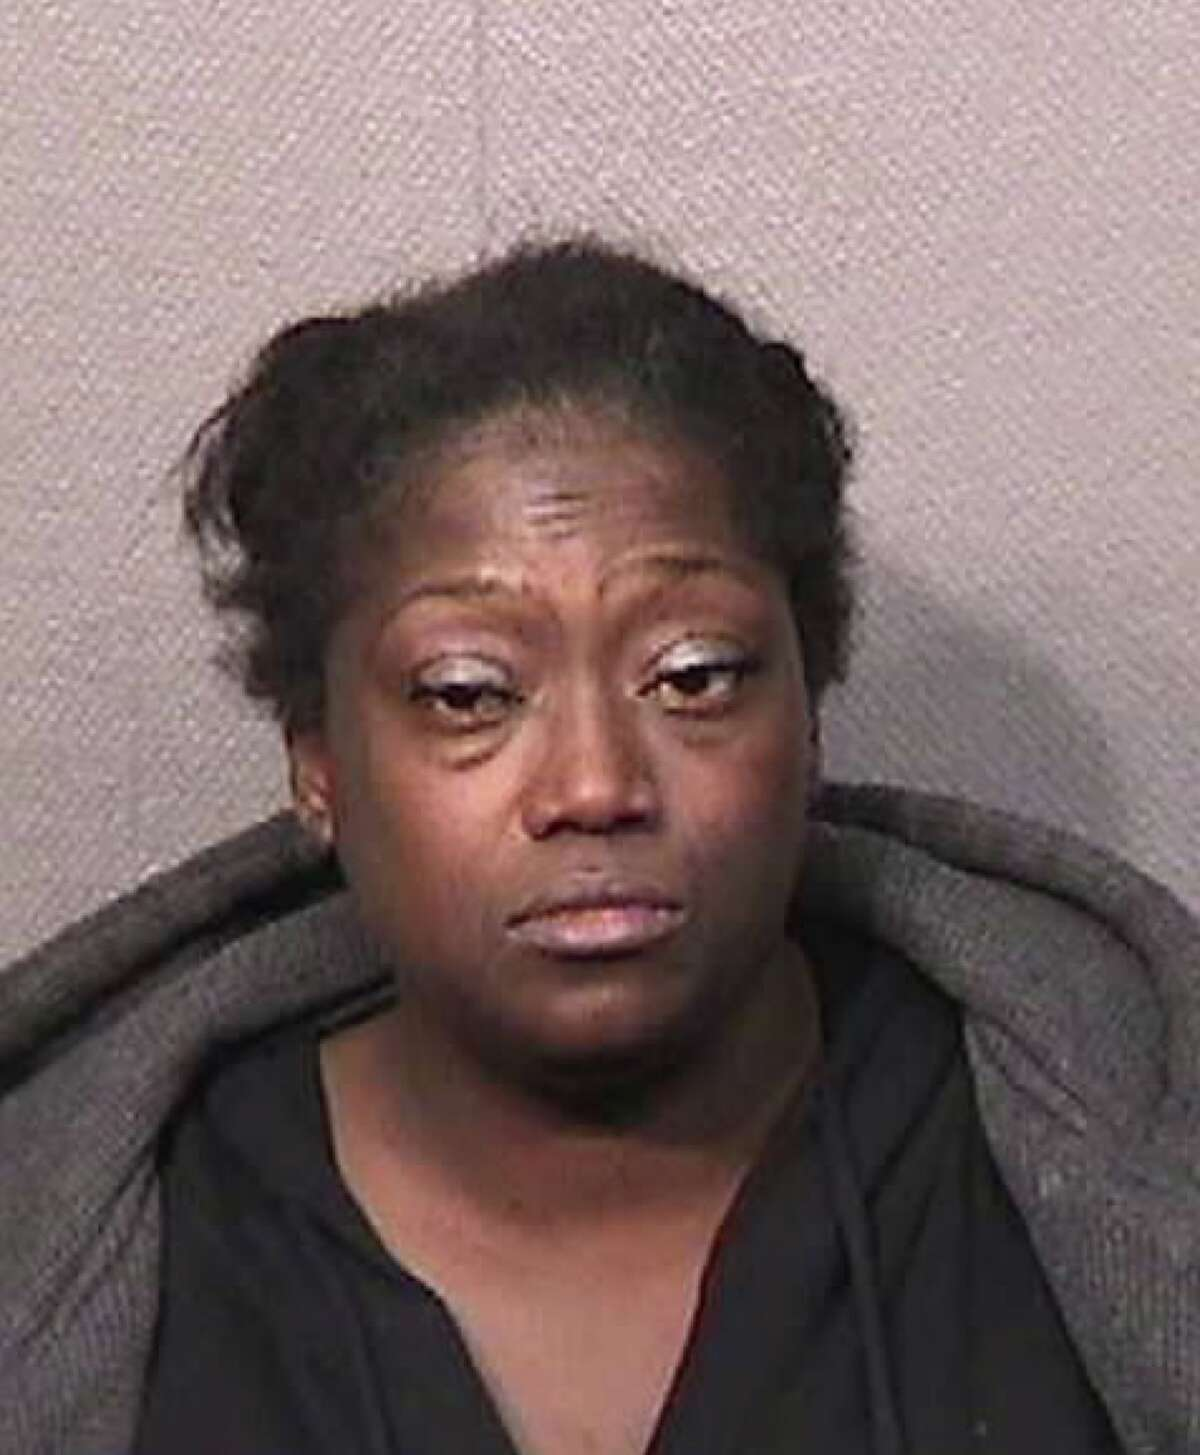 Shevon Edwinnie Hampton Wanted for burglary of a habitation Age: 41 Height: 5 feet, 5 inches Weight: 160 pounds Brown eyes, black hair Last known location: Houston Anyone with information about this person is urged to call Houston Crime Stoppers at 713-222-TIPS (8477).